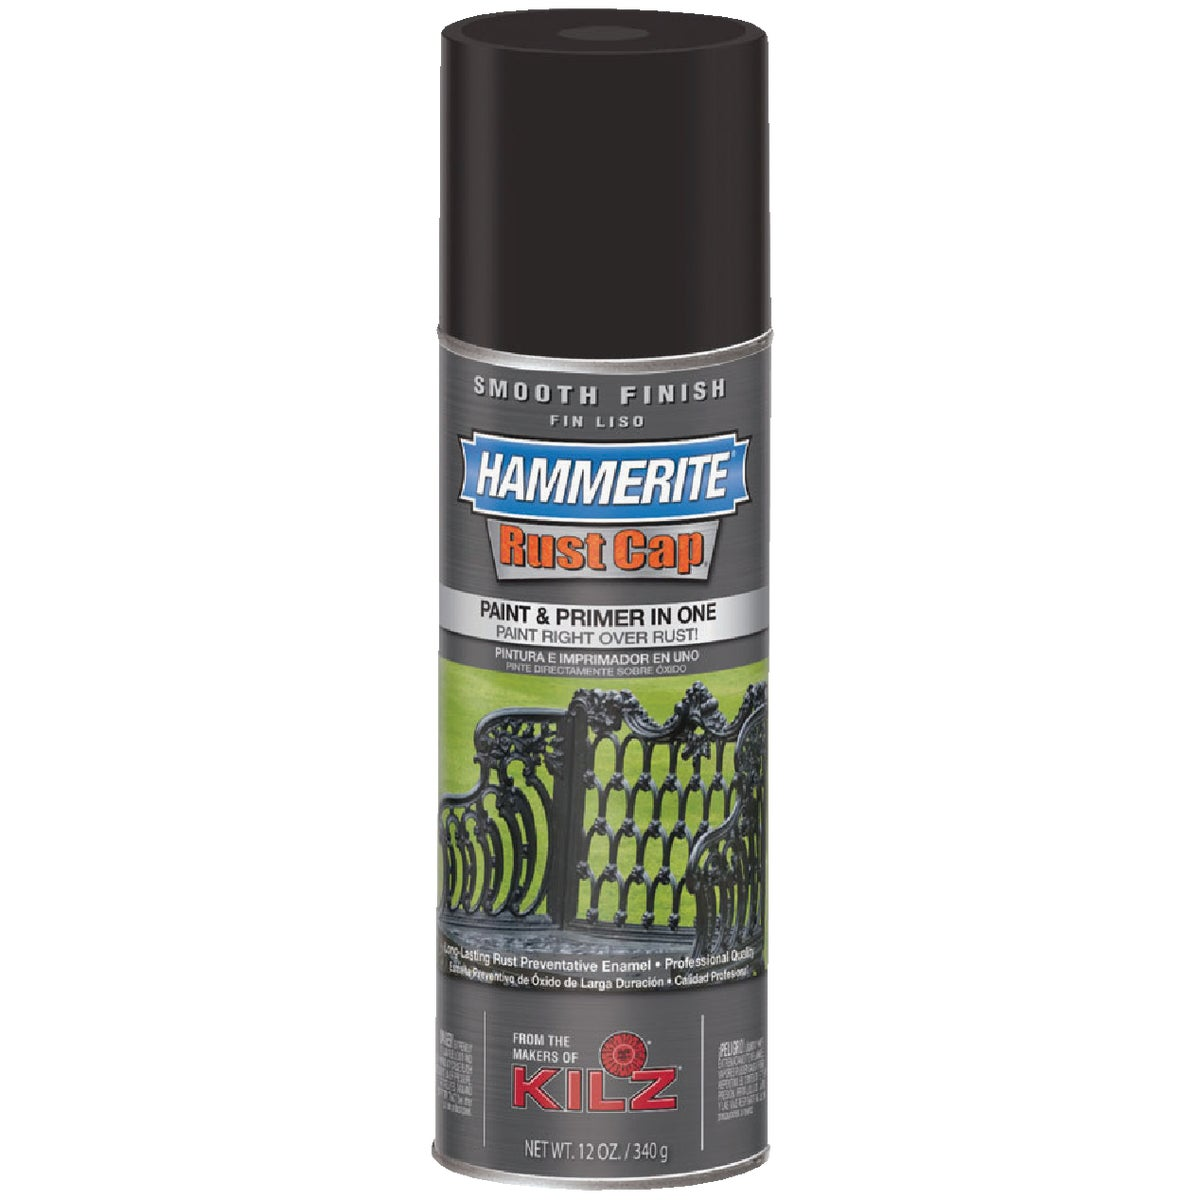 GLS BLK SMTH SPRAY PAINT - 42240 by Masterchem